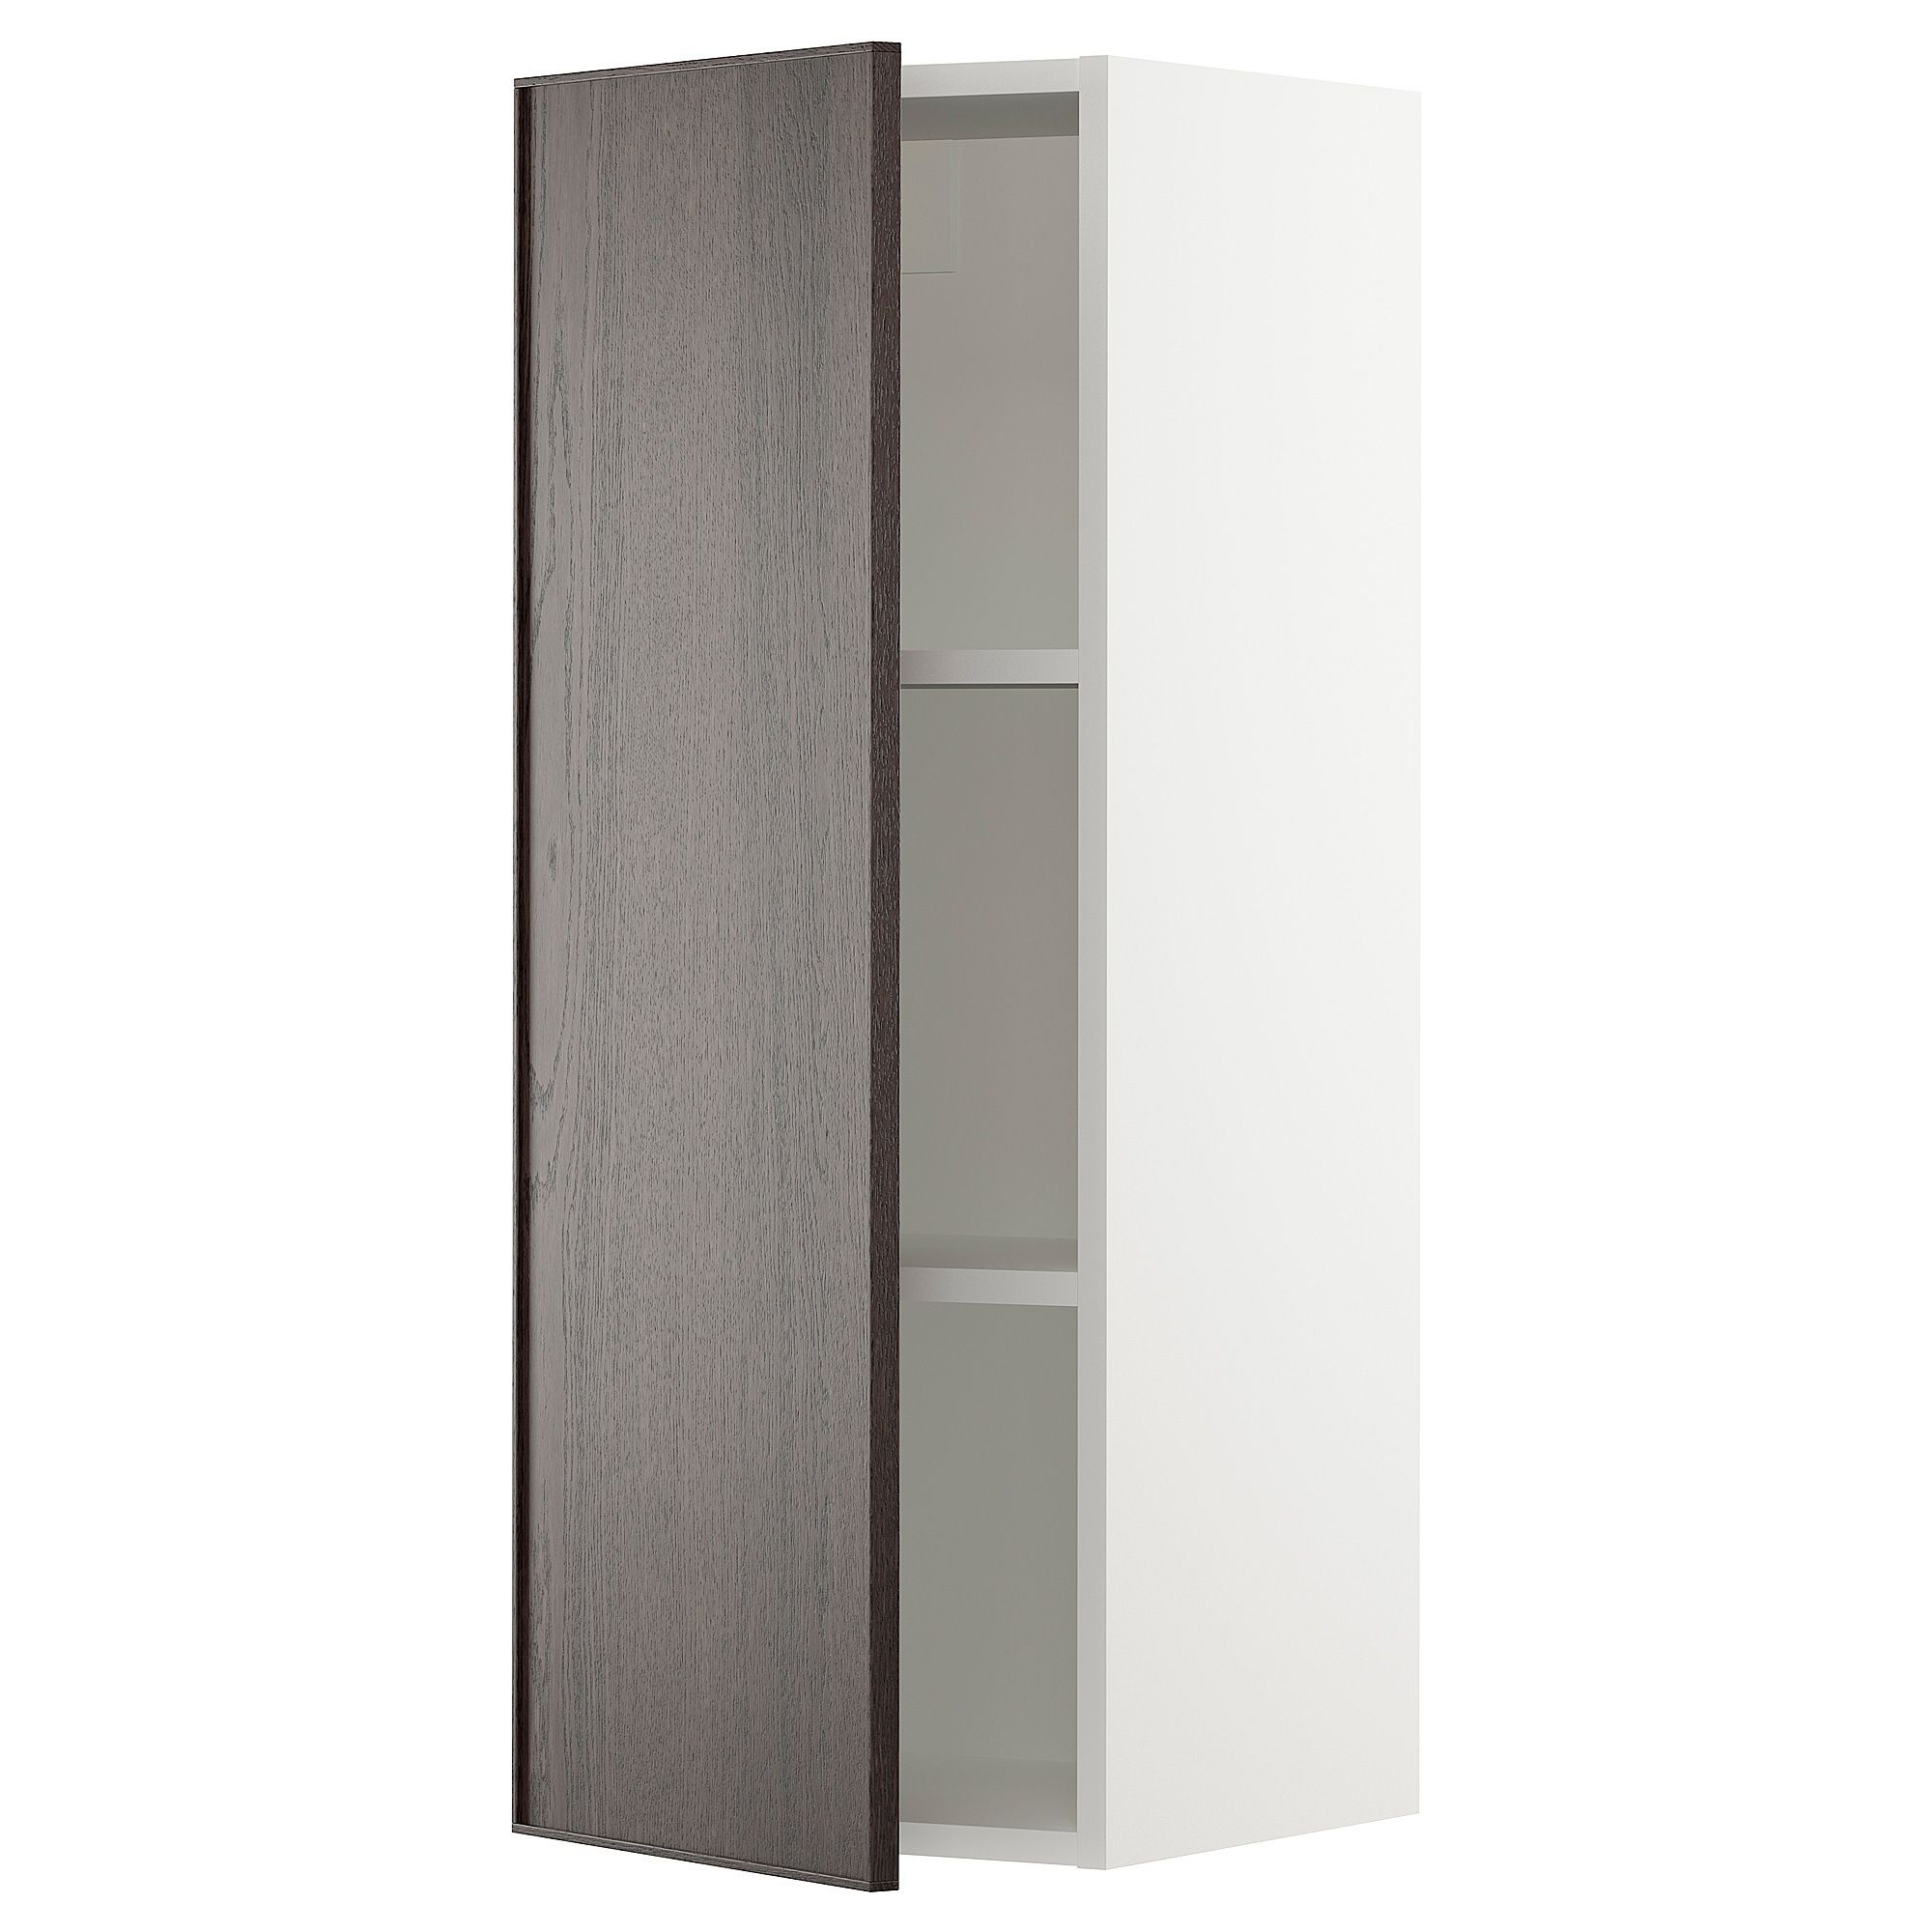 Ikea Sektion White Wall Cabinet Frame Colour White Ekestad Brown Wall Cabinet Lacquered Walls Tall Cabinet Storage